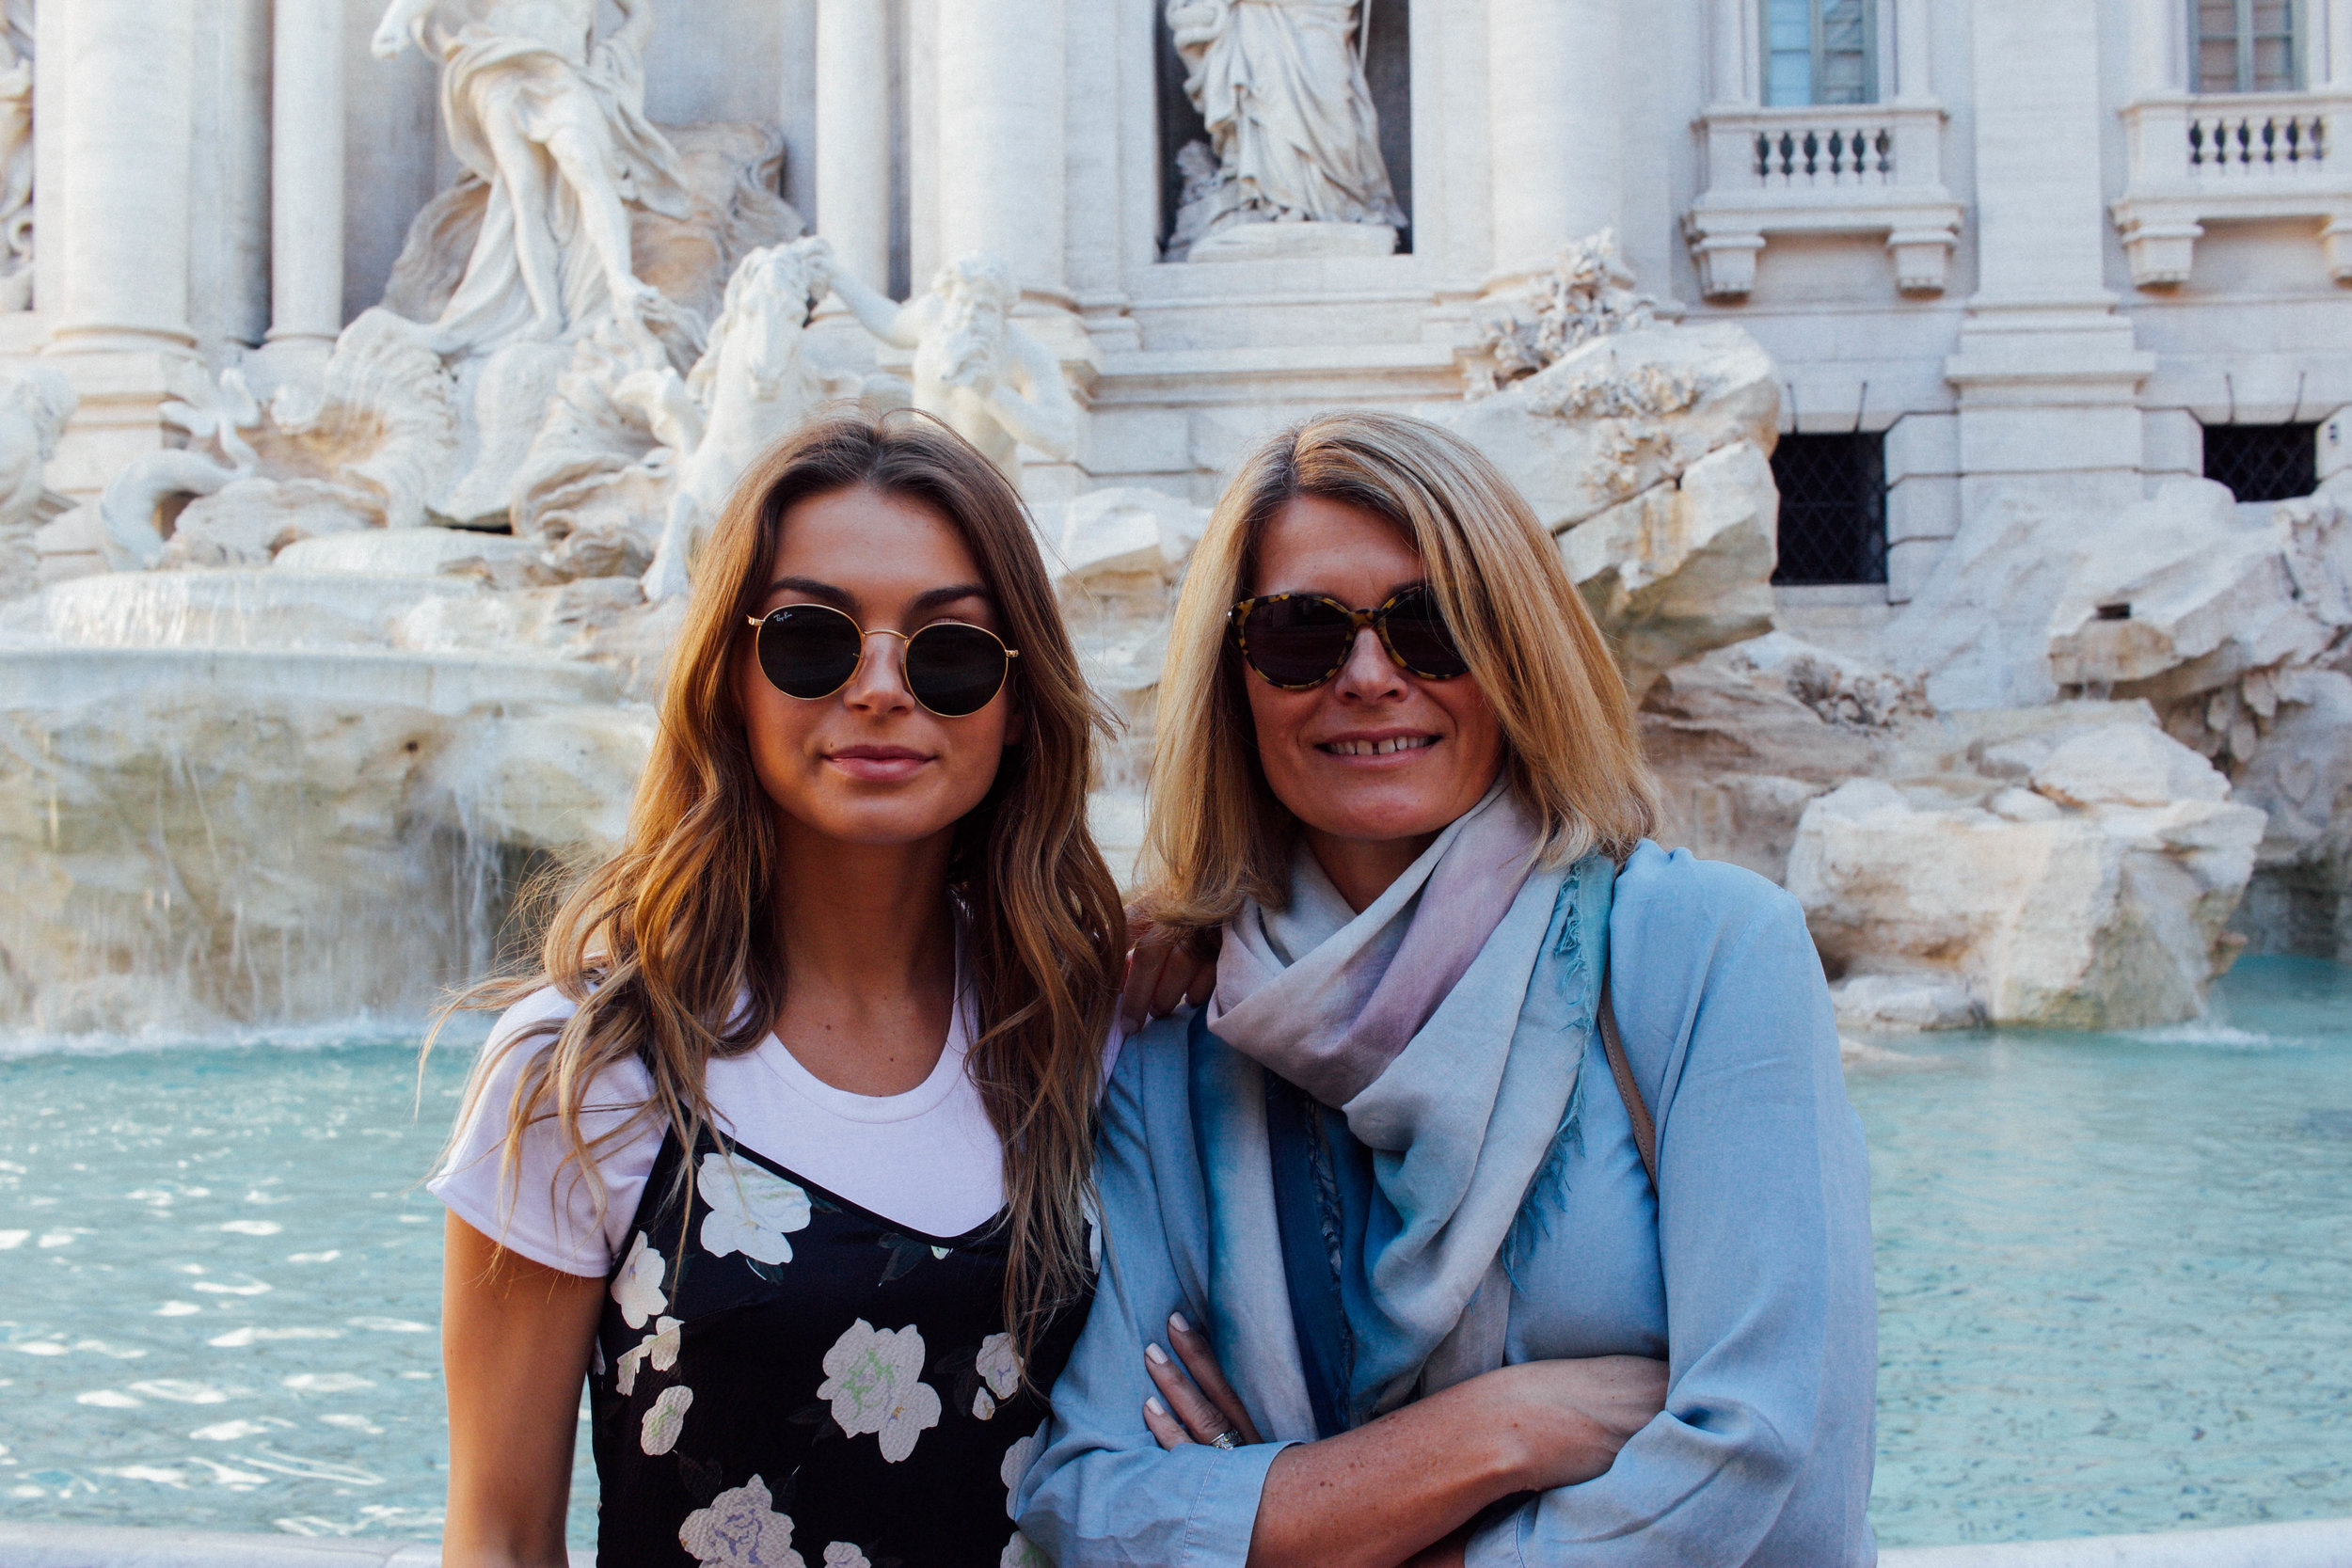 Me and Mum at the Trevi Fountain 7:30AM!